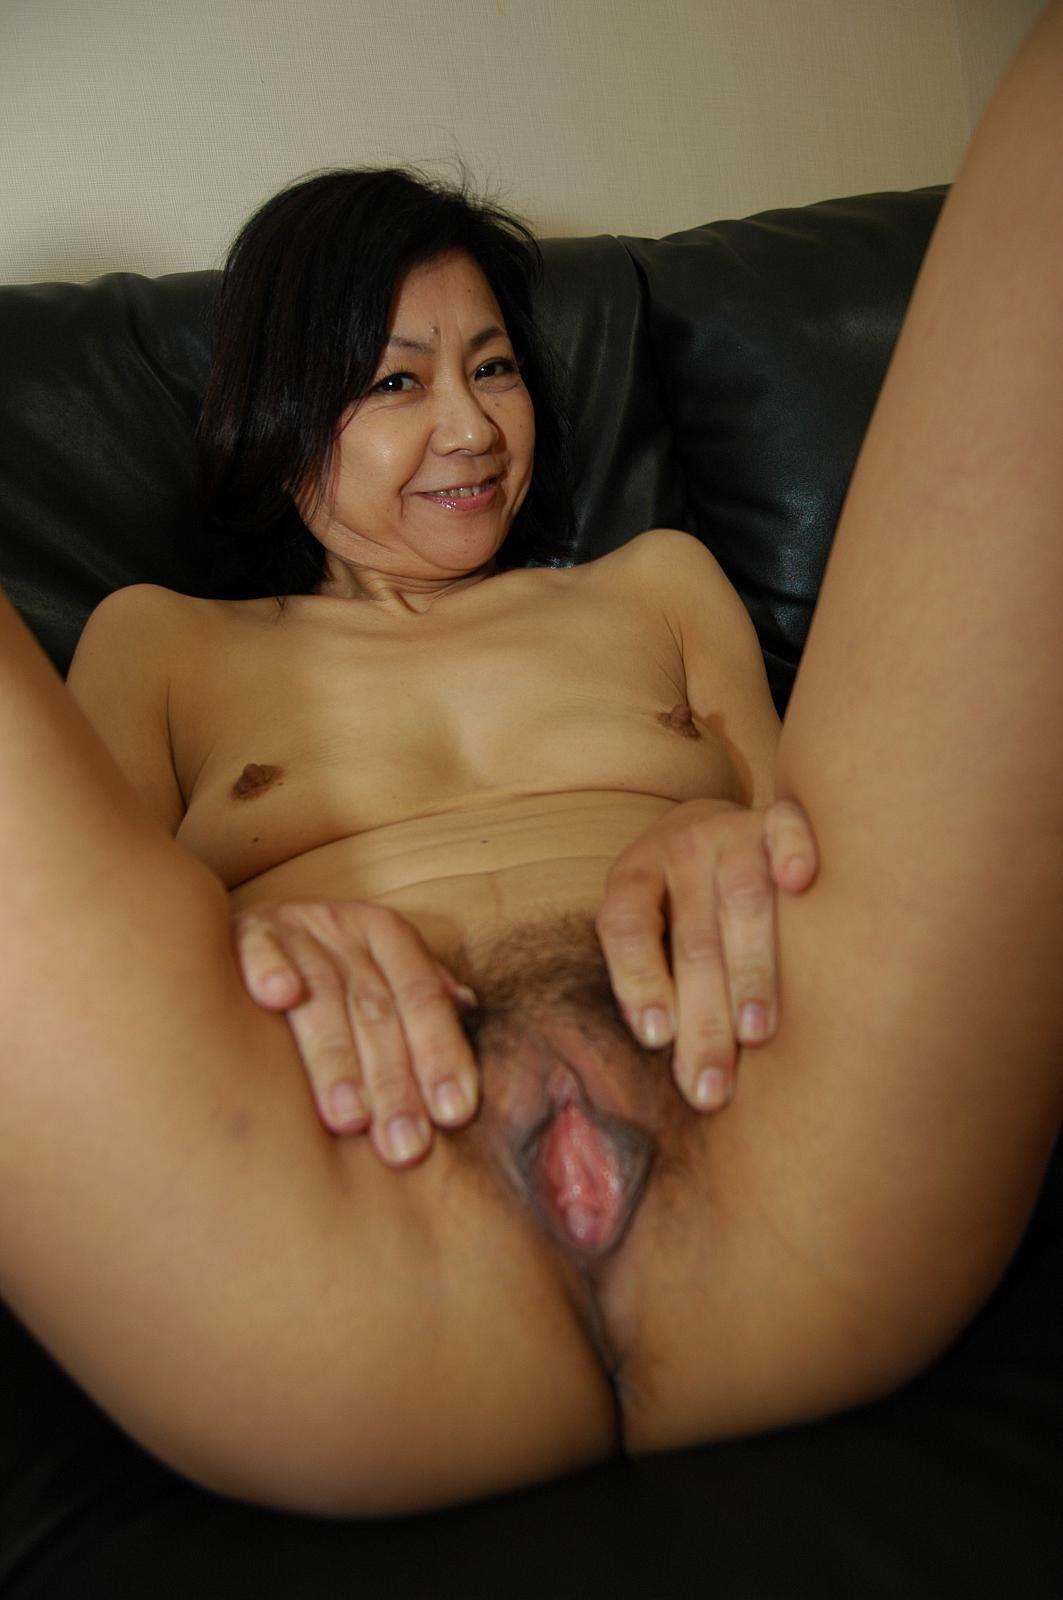 Gallery post mature asain